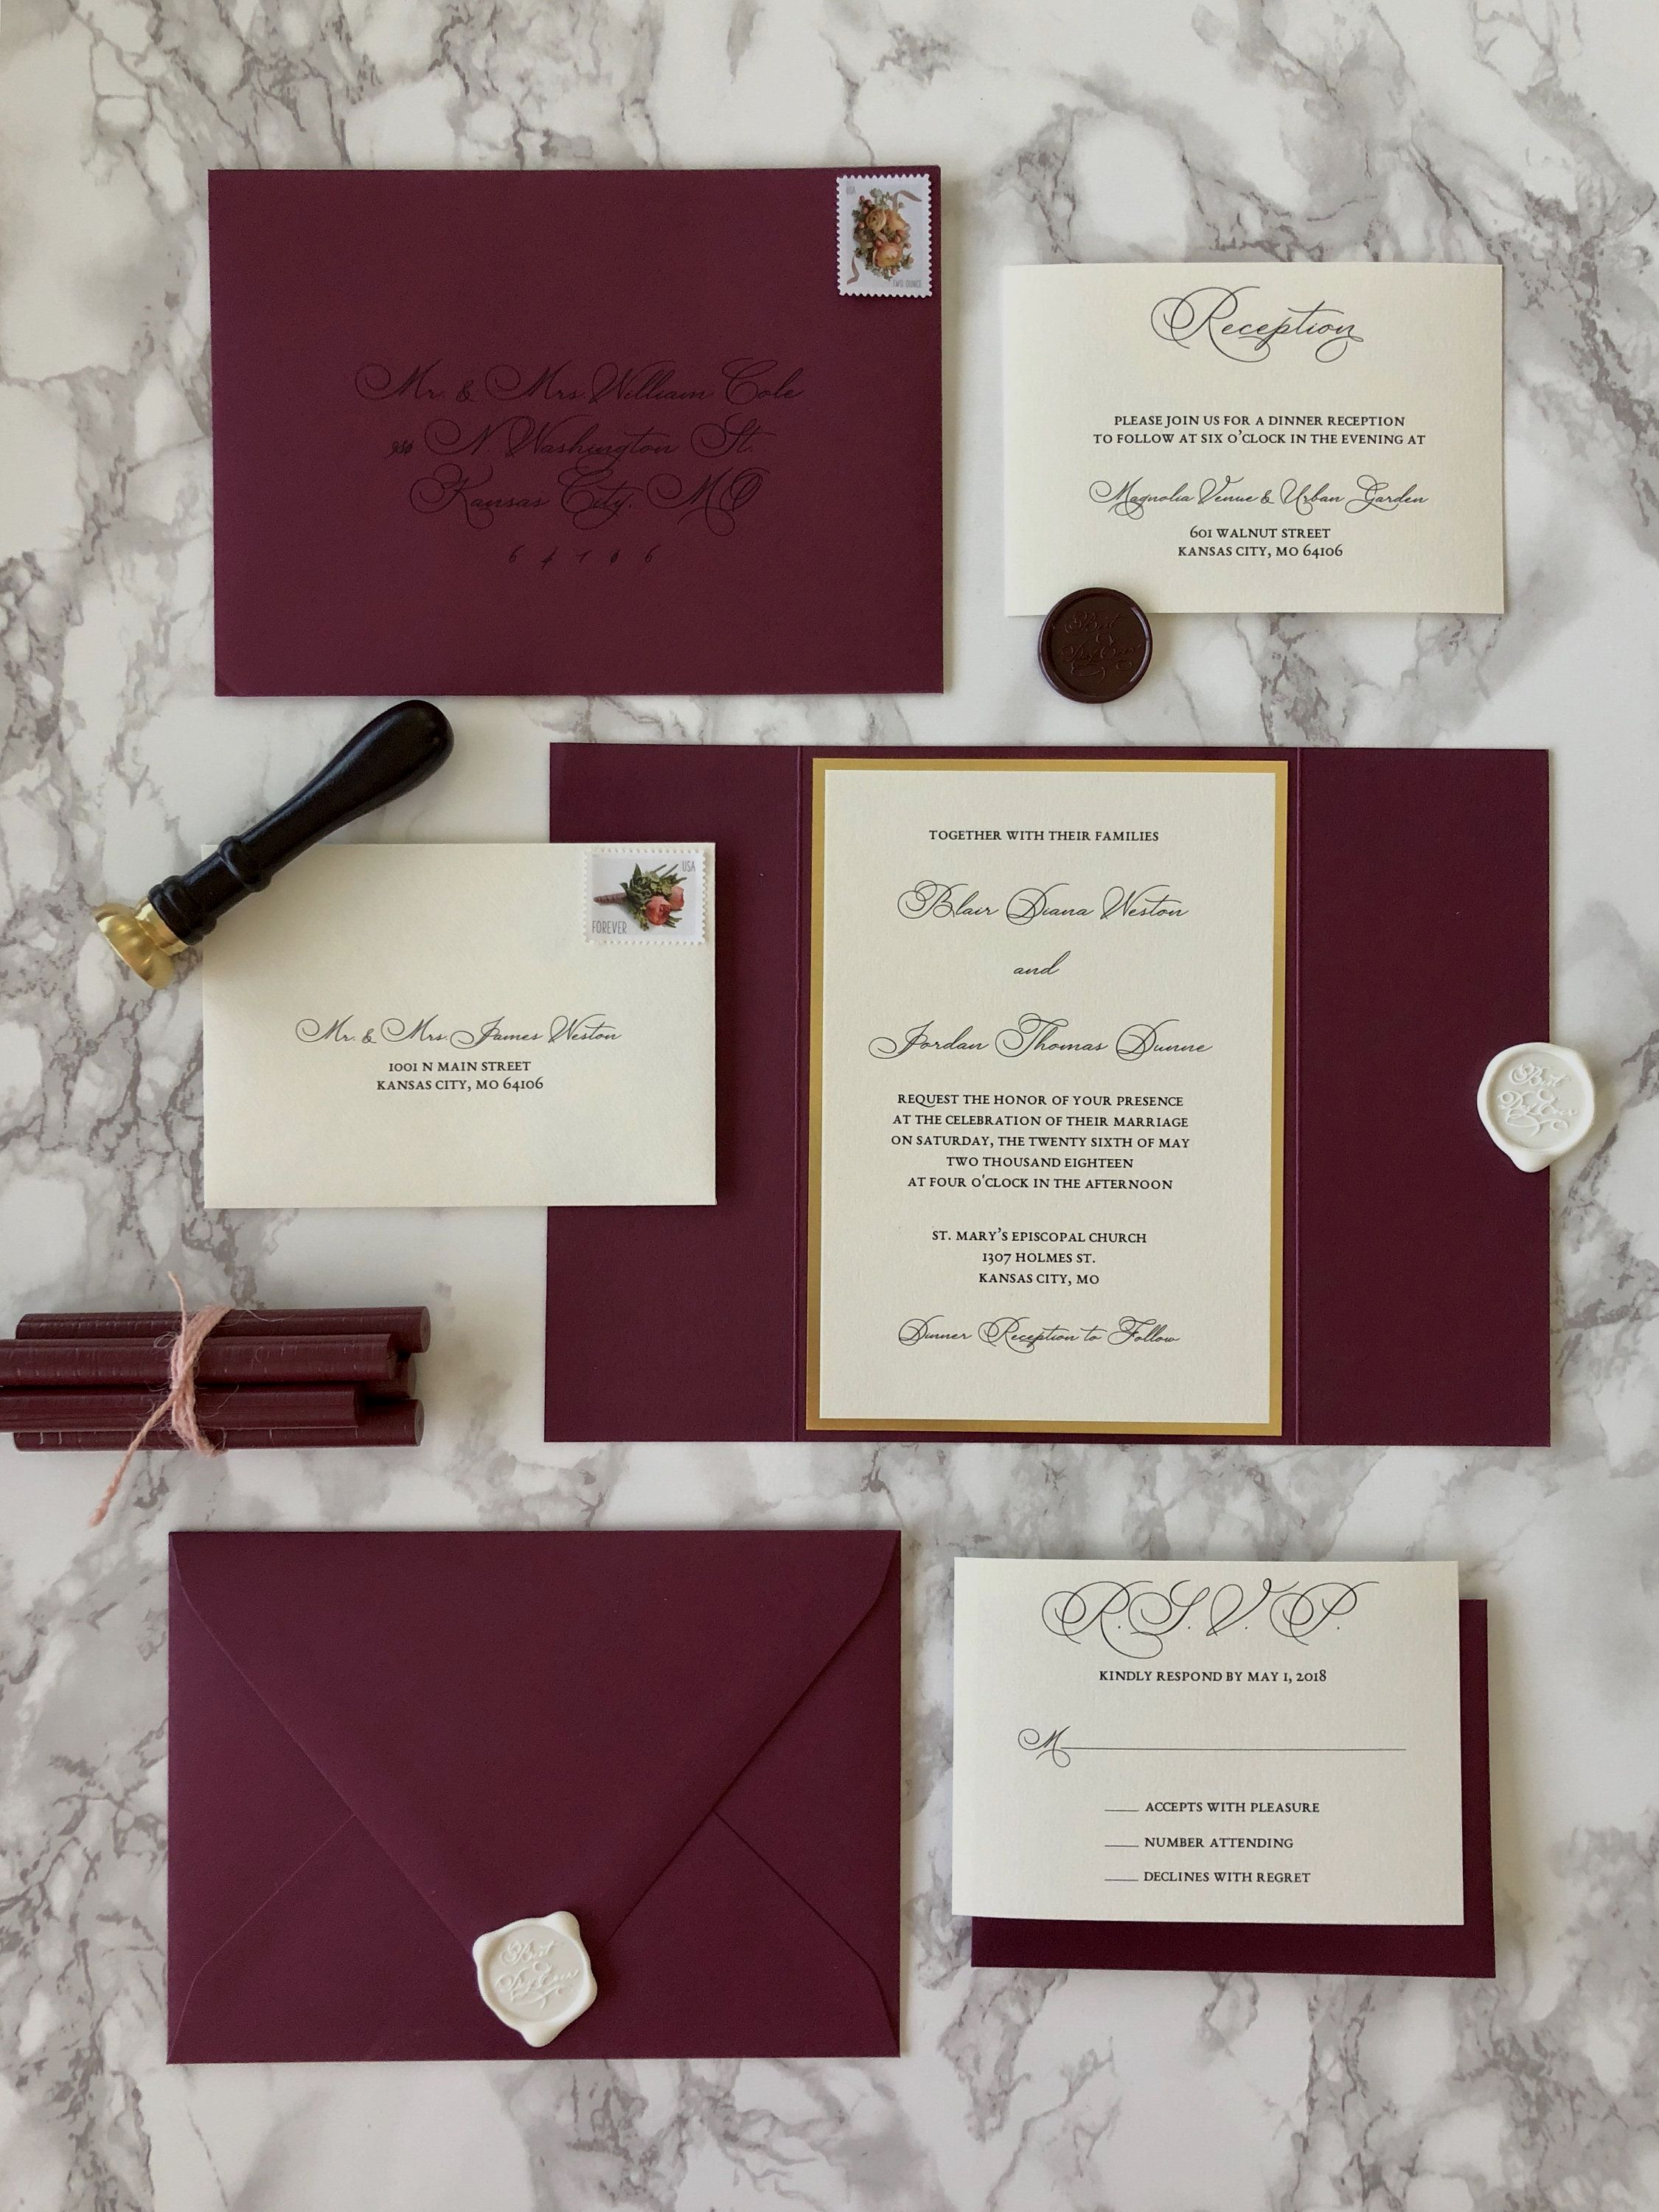 Customizable Wedding Invitations Burgundy Wedding Invitations Fun Wedding Invitations Wedding Invitations Diy